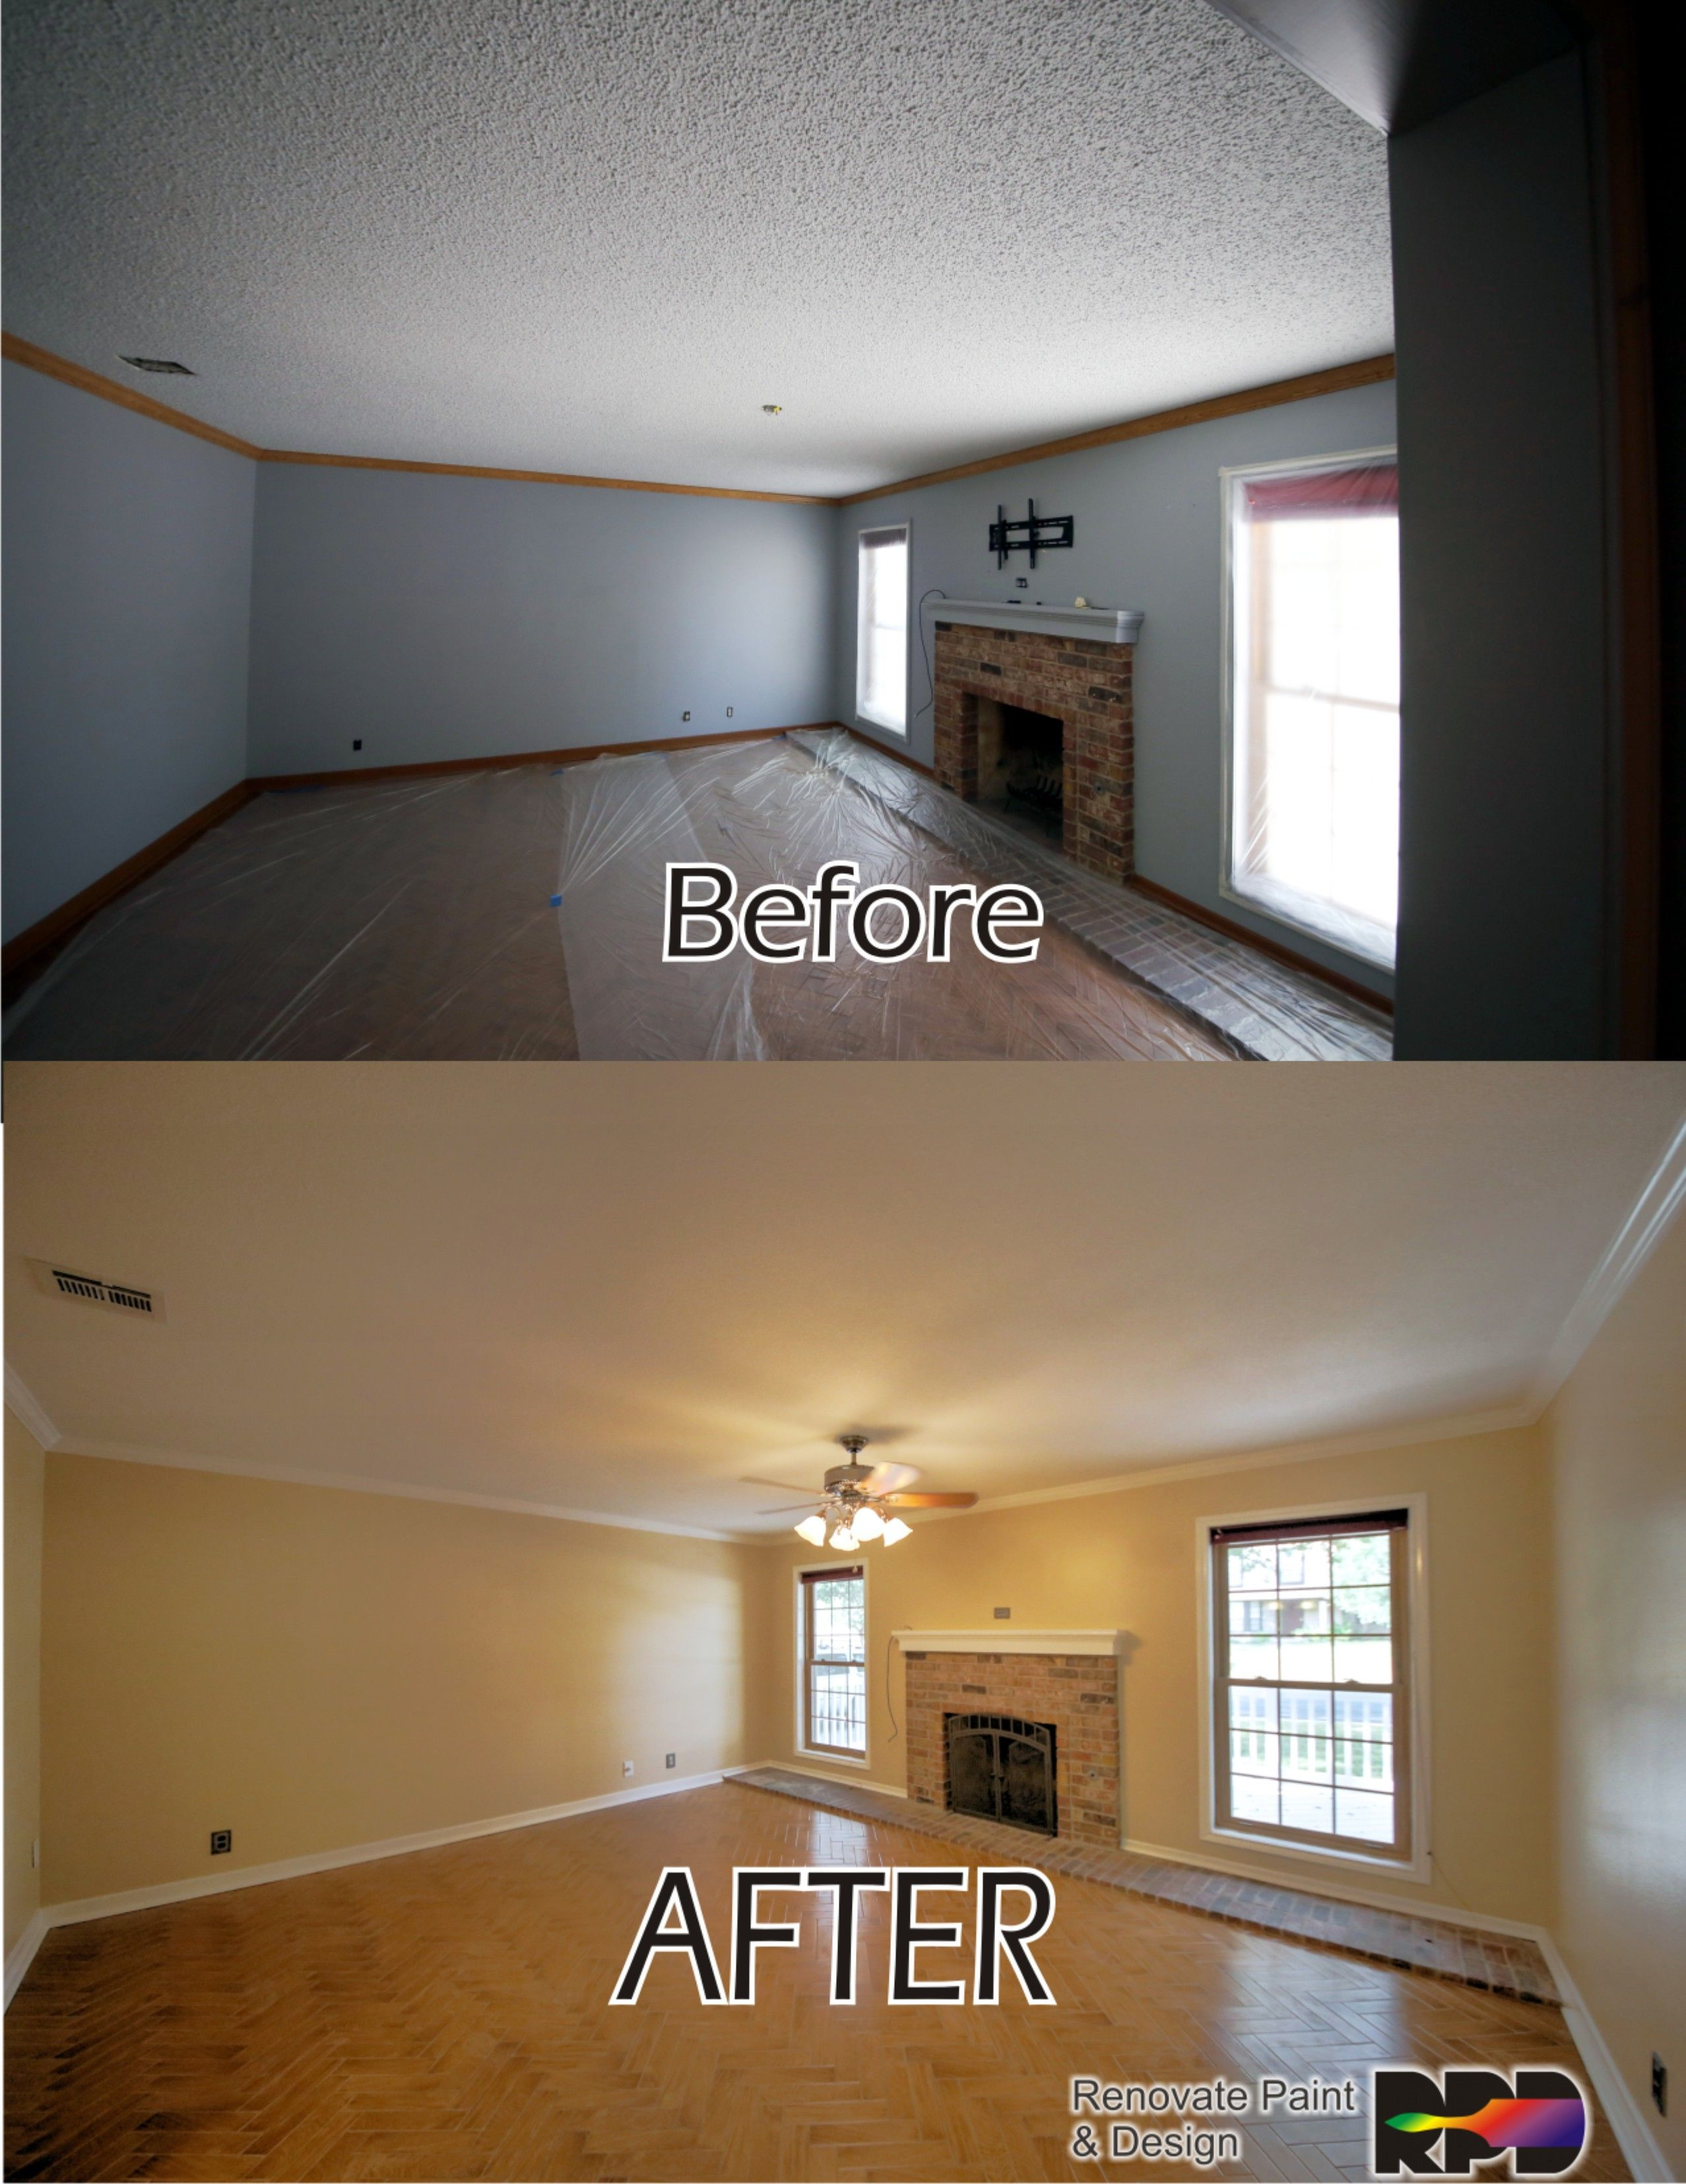 guy work removal drywall services ceilings ceiling img contractor at popcorn